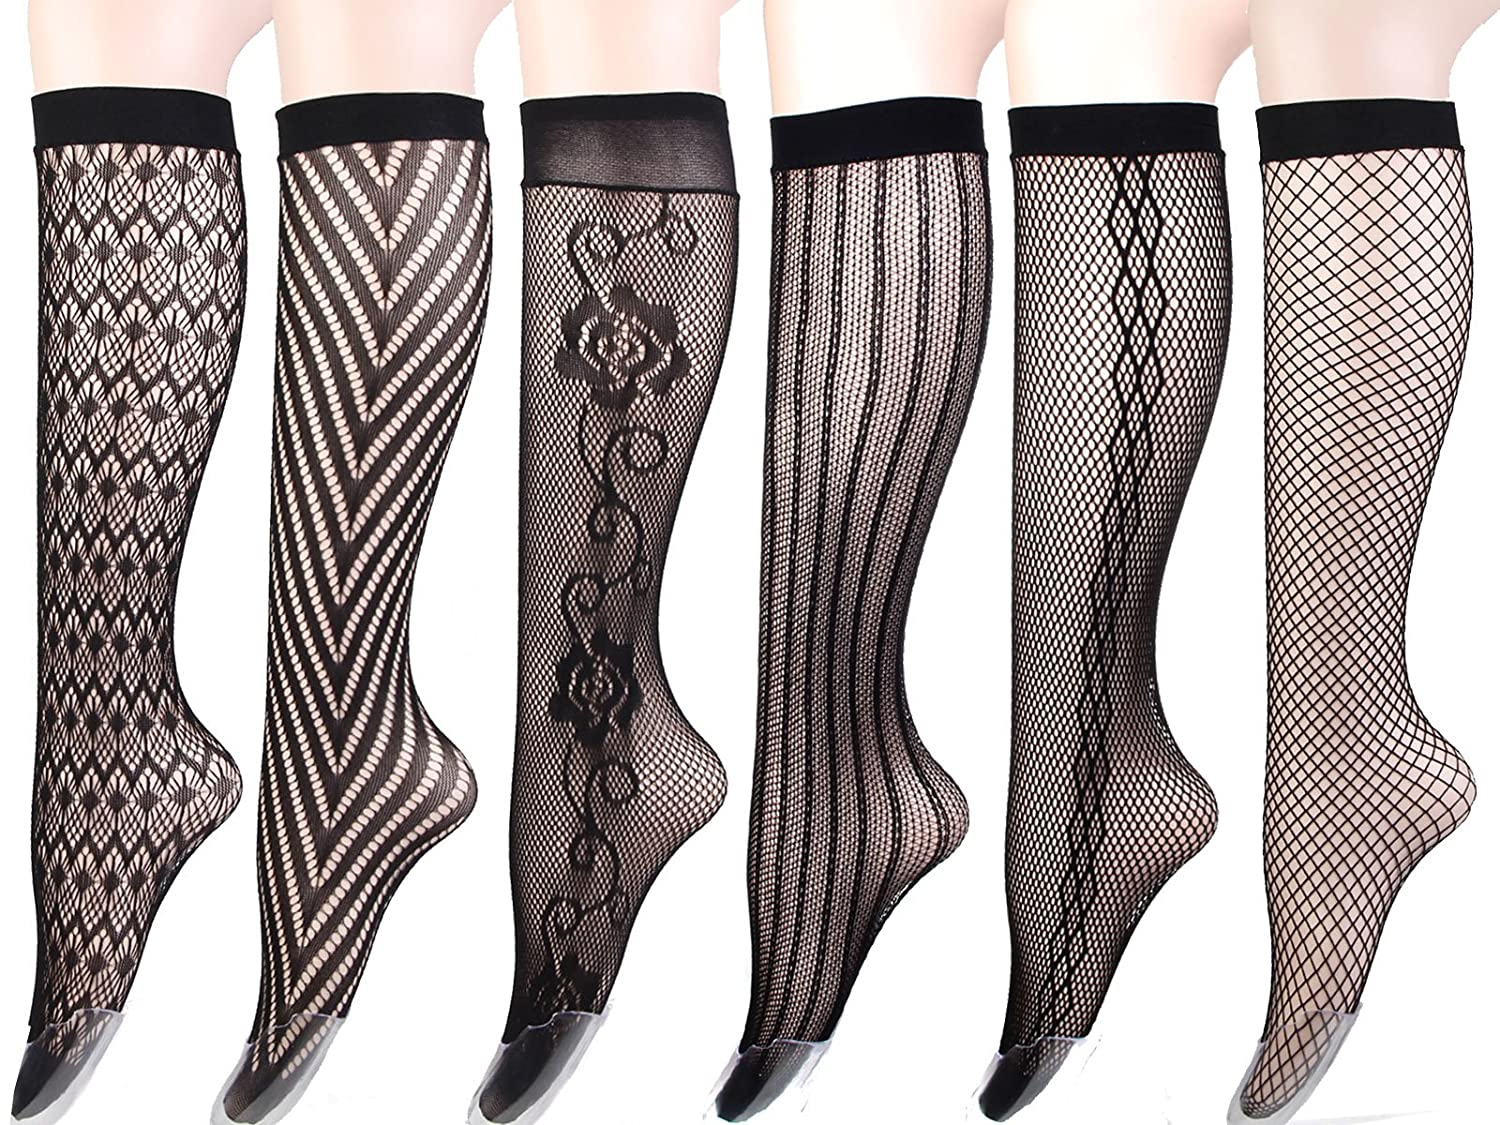 5e72fa34f Women s Stay Up Knee High Patterned Trouser Socks Fishnet Stockings Black 6  Pairs  Amazon.ca  Clothing   Accessories